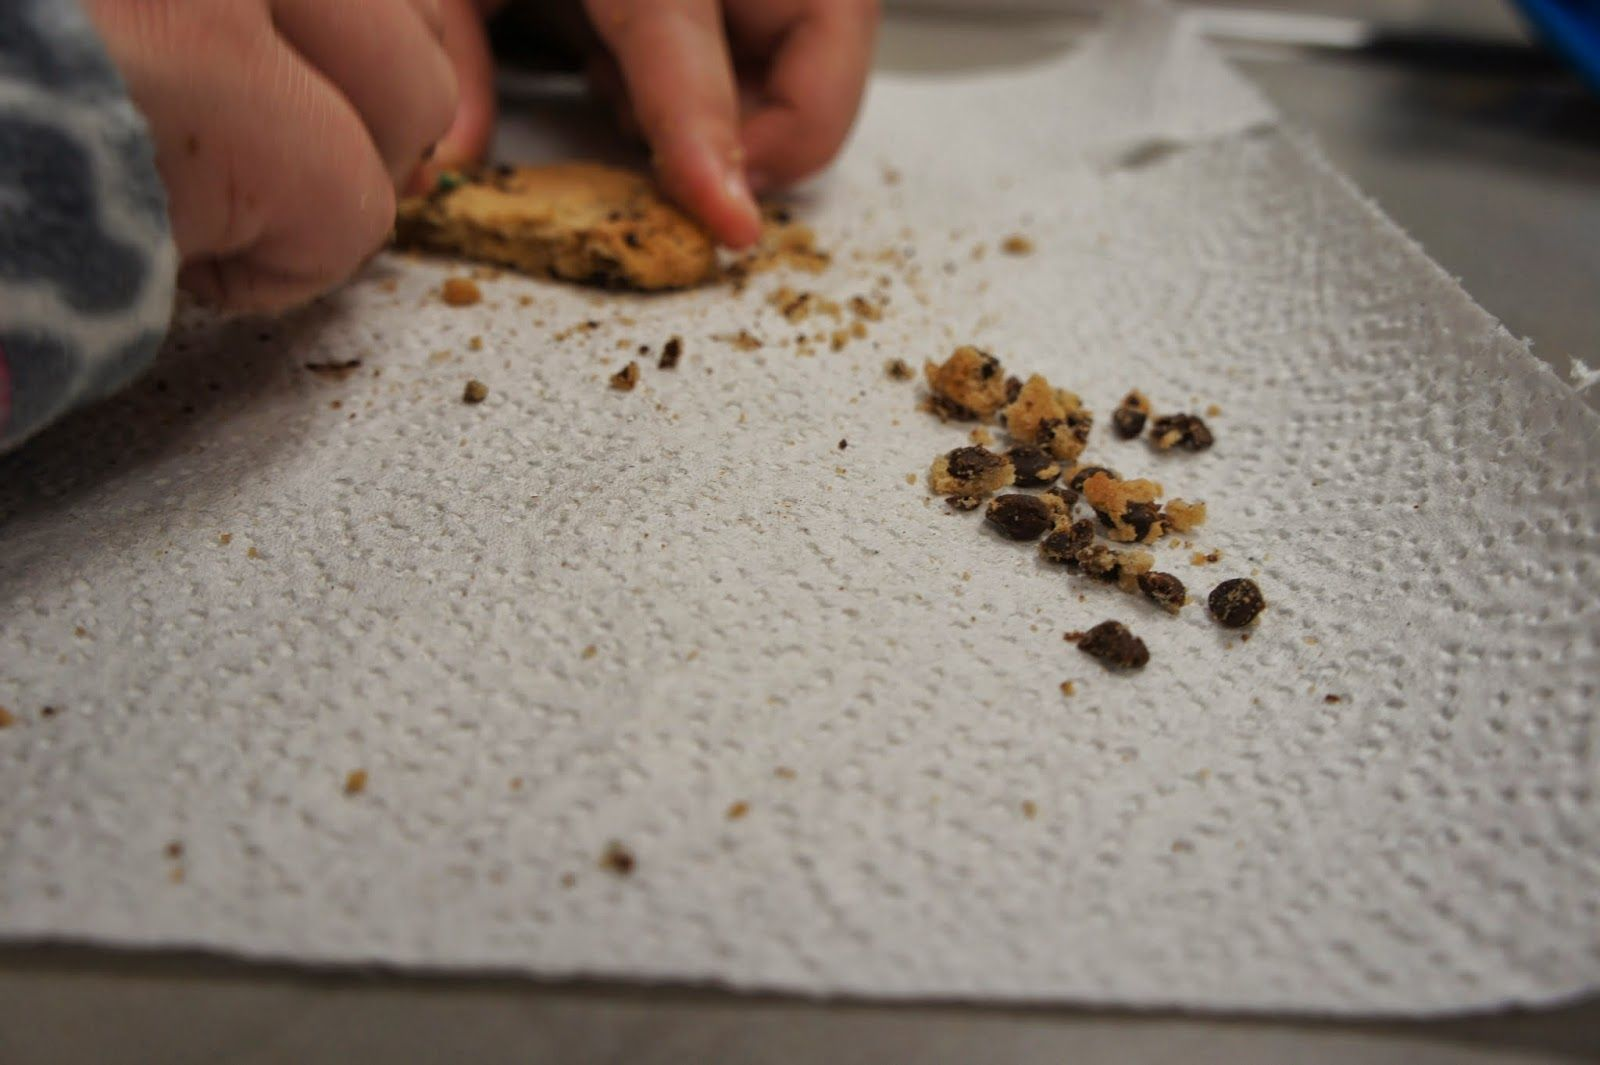 Dig Chocolate Chips Out Of Cookies For A Hands On Science Lesson On Weathering And Erosion